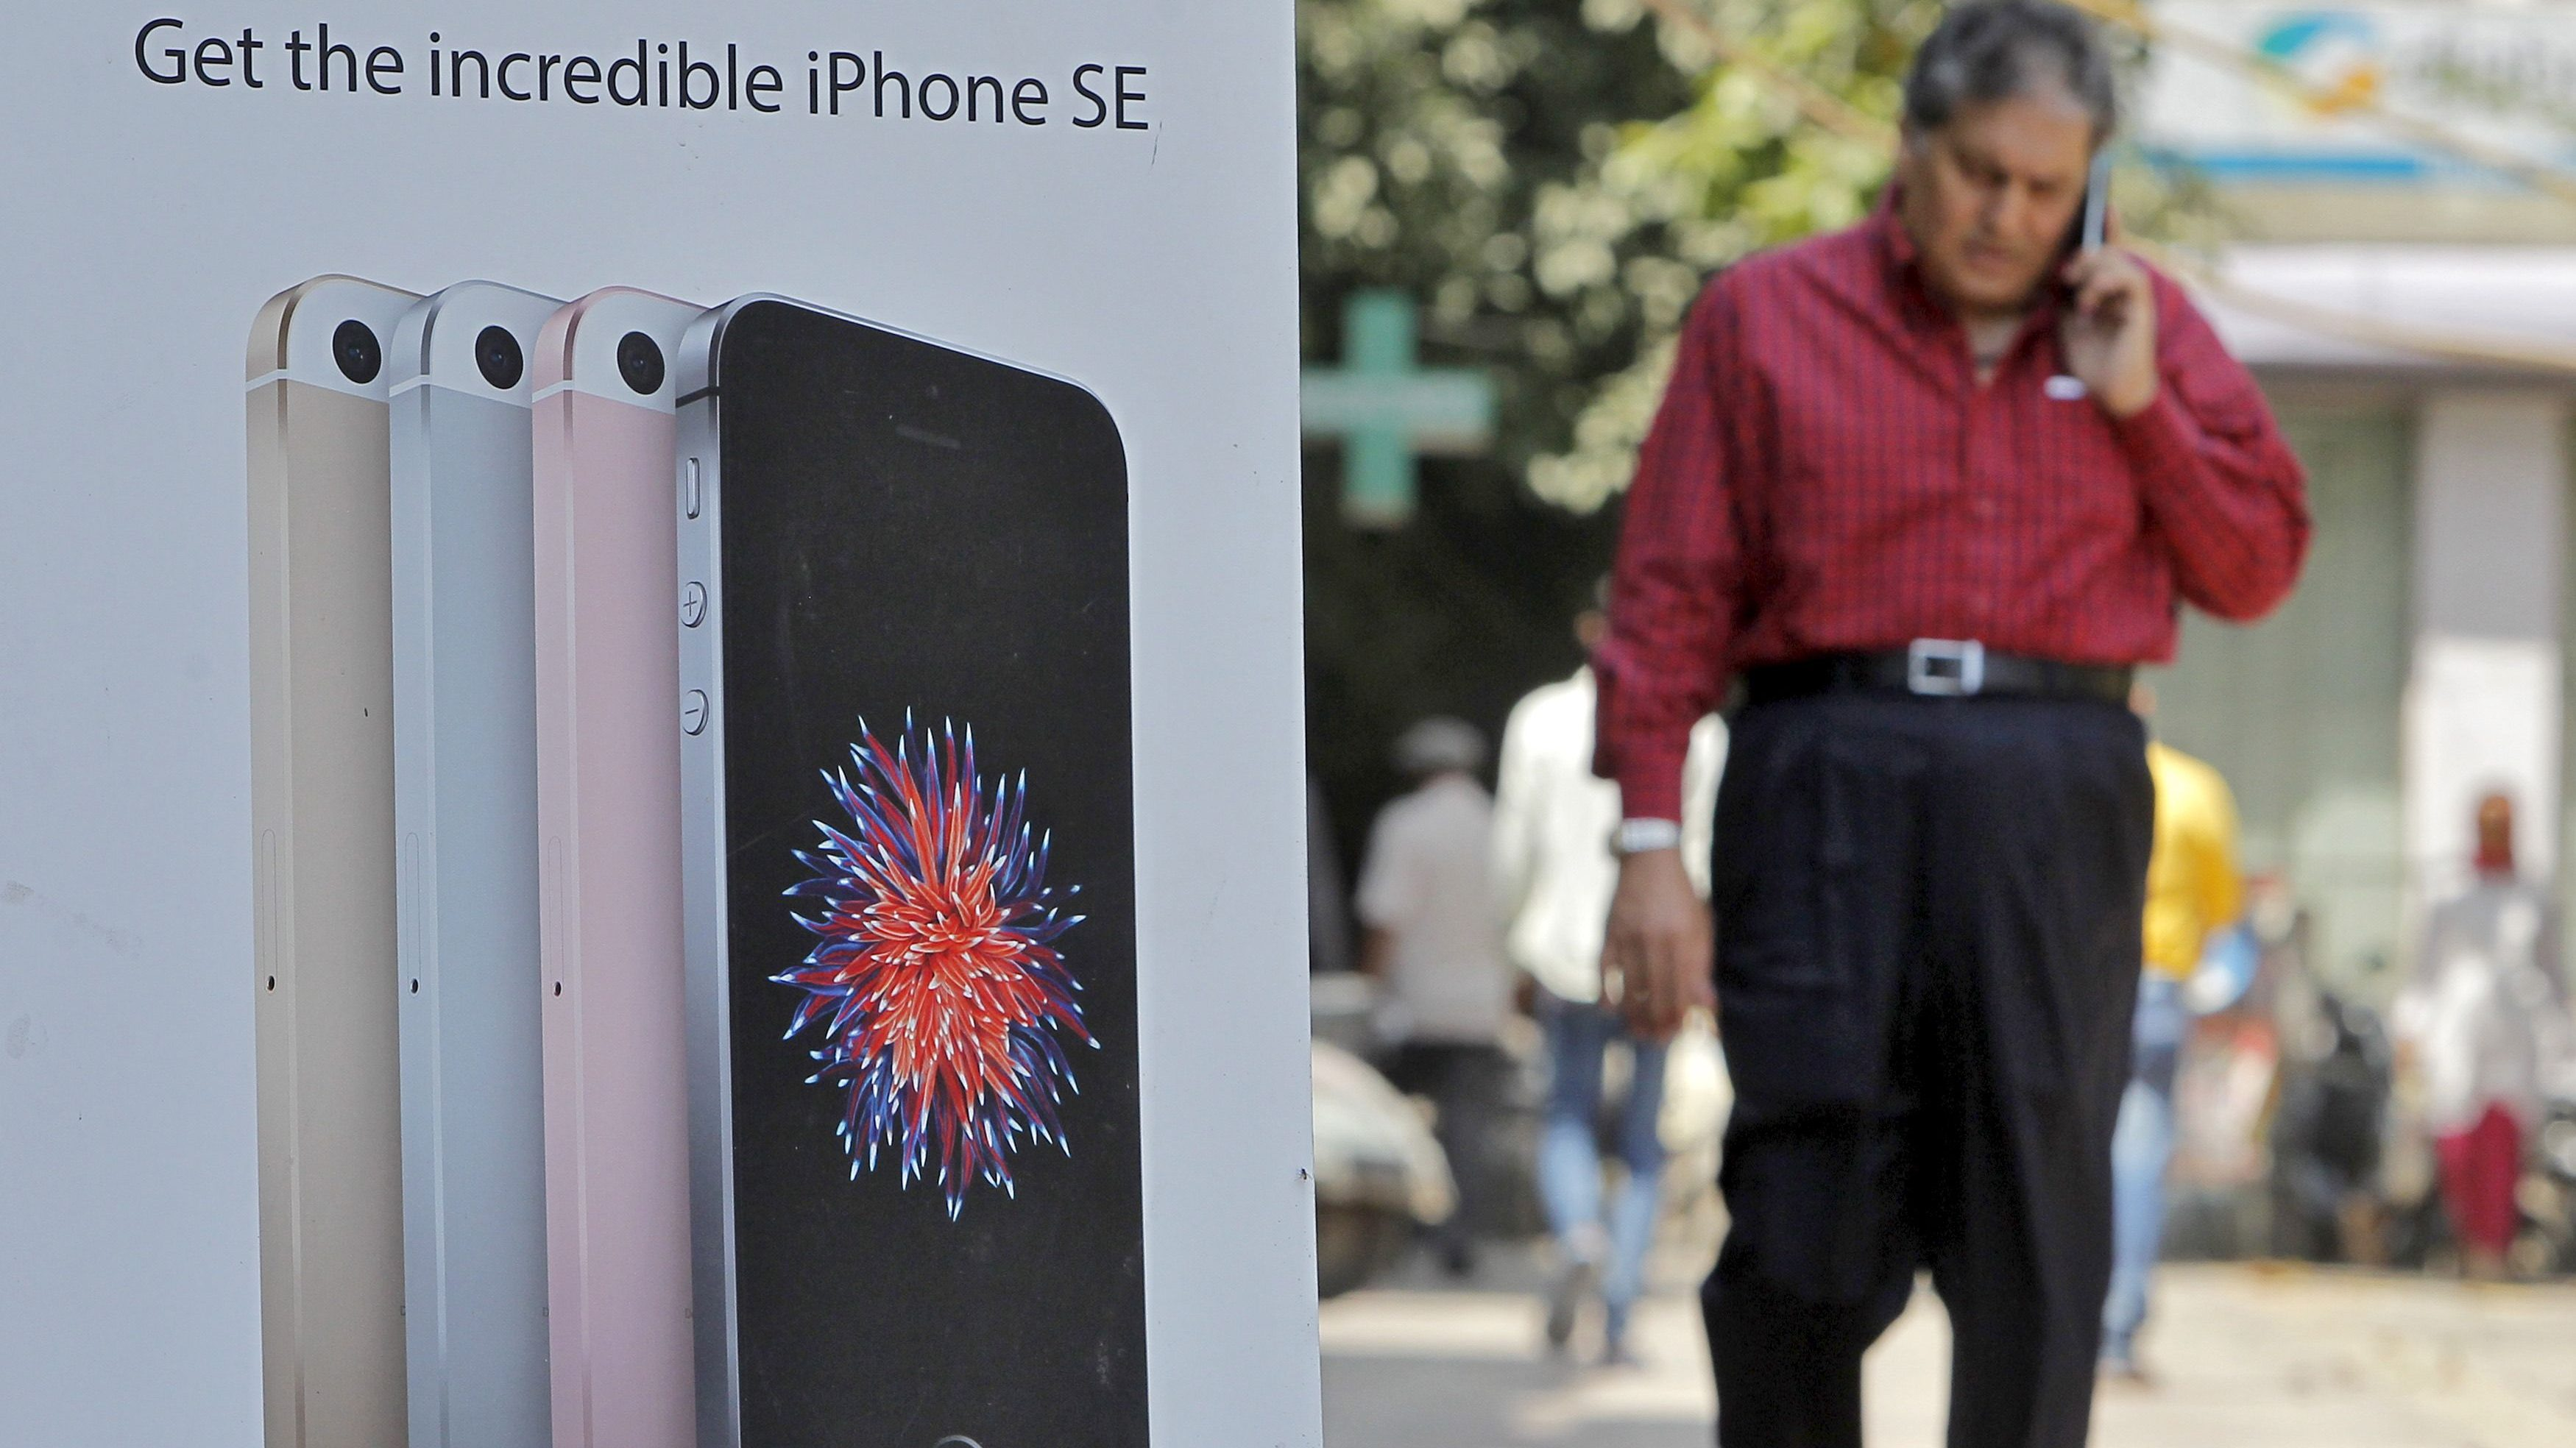 65a46e55f26 A man speaks on his mobile phone as he walks past an Apple iPhone SE  advertisement